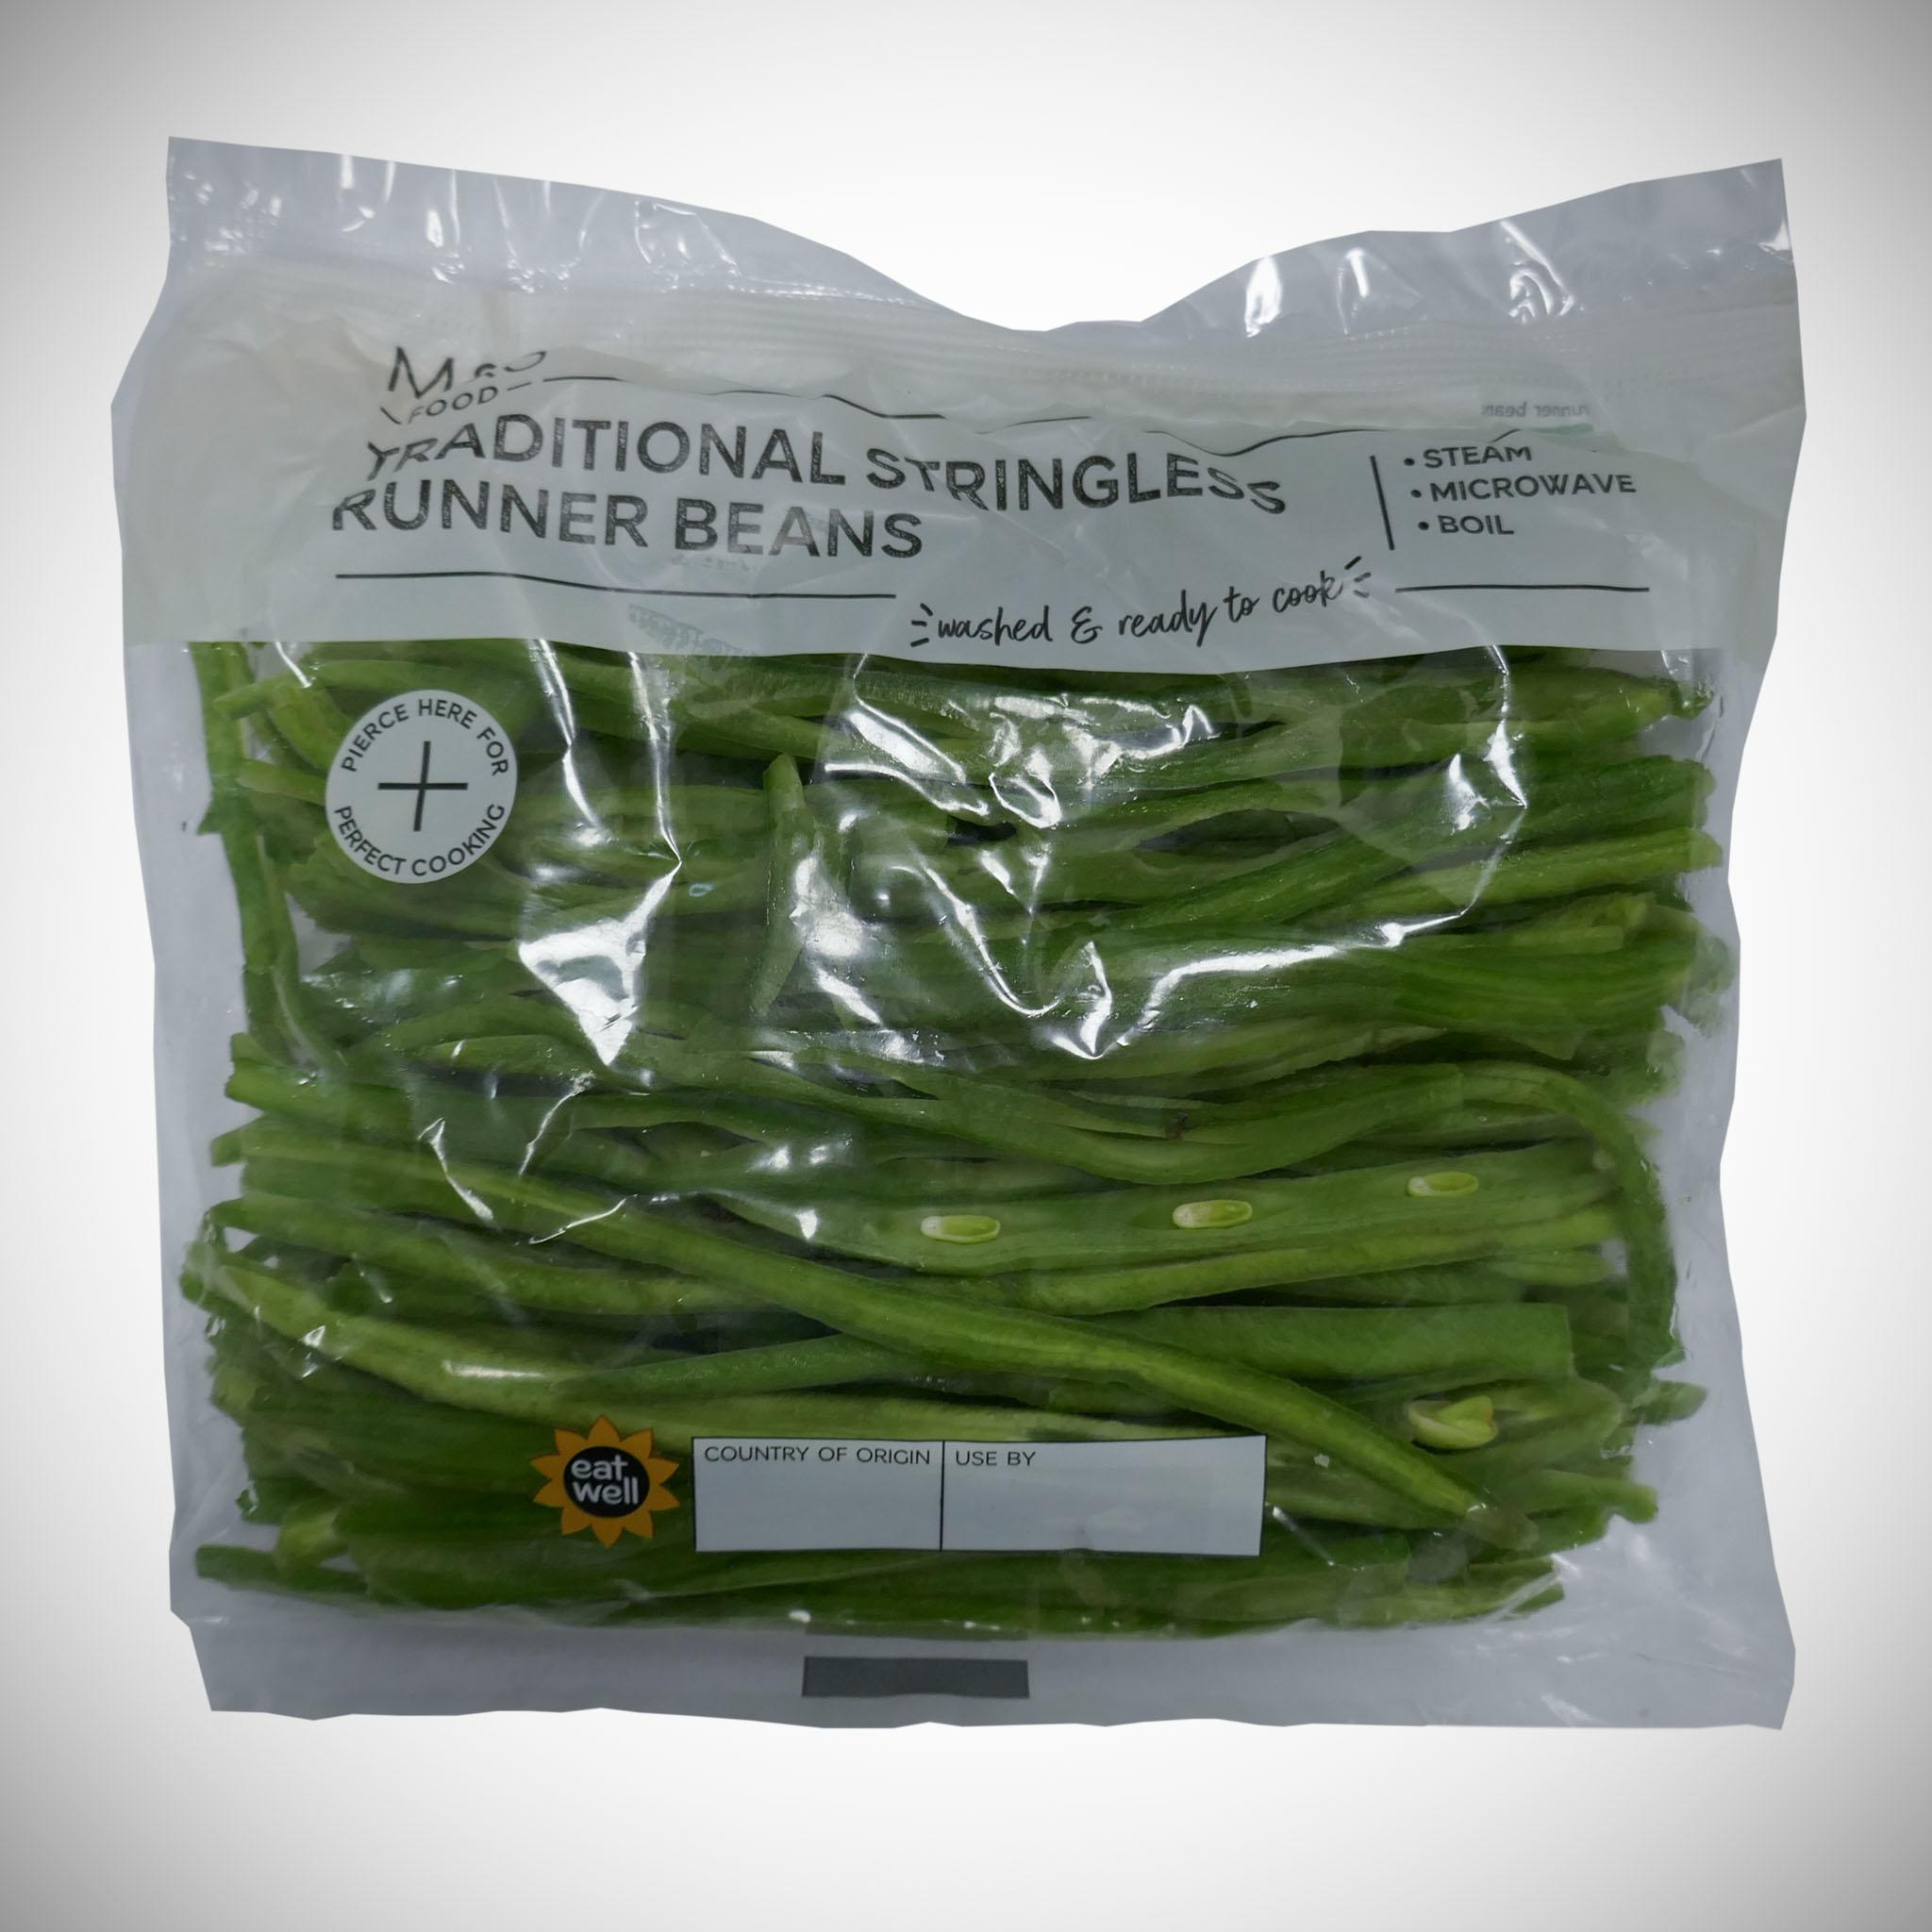 Traditional Stringless Runner Beans 280g